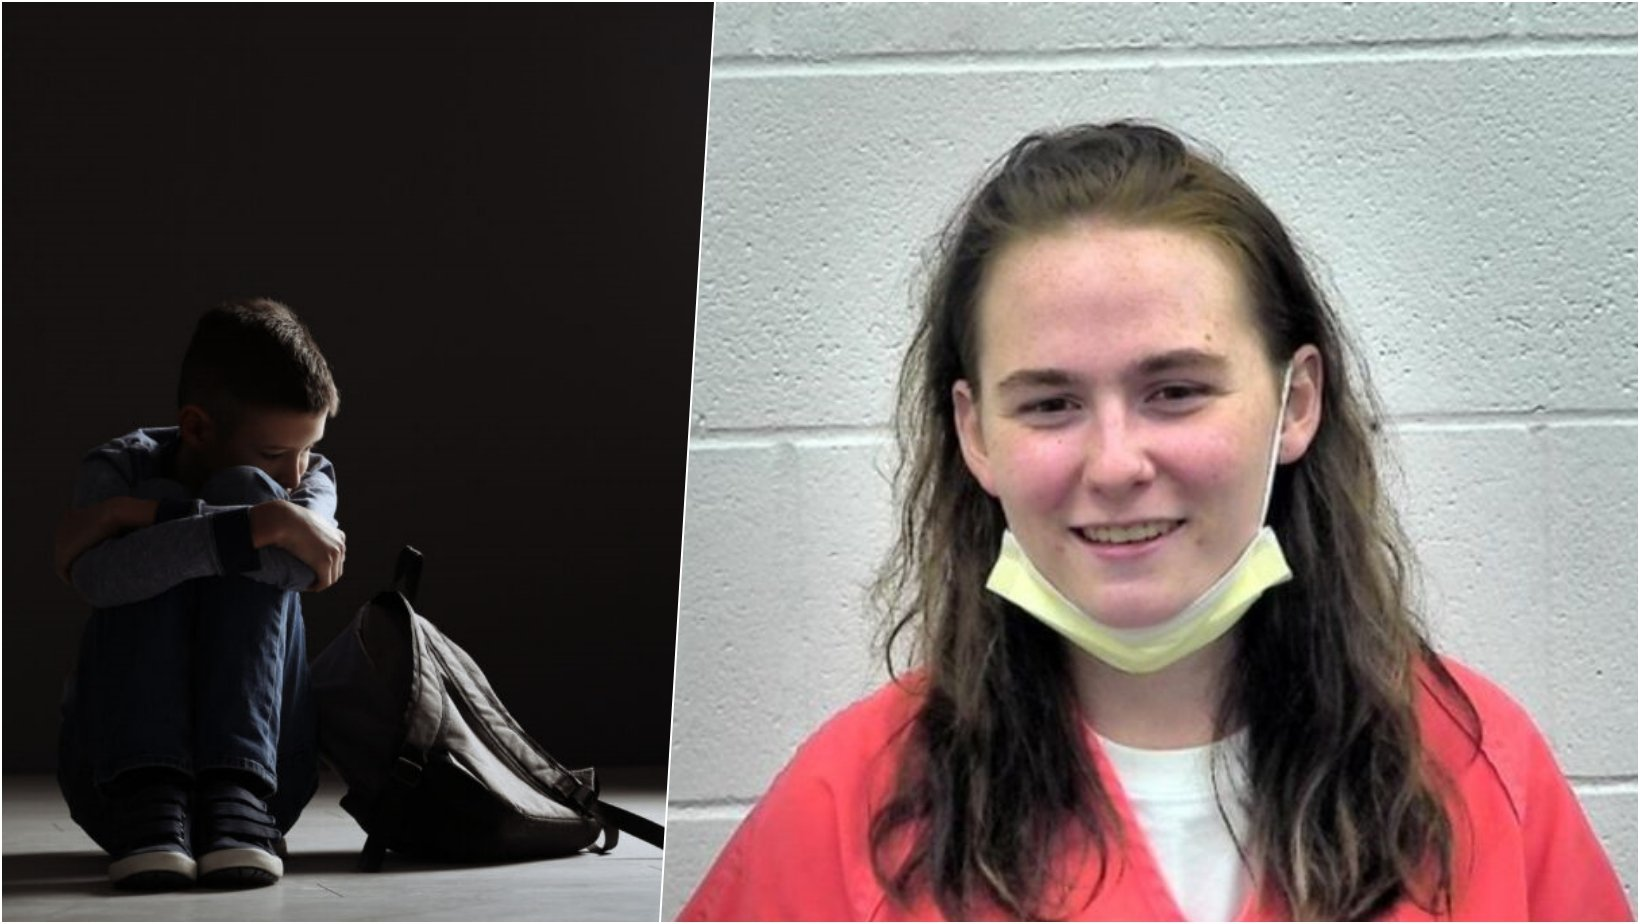 6 facebook cover 15.jpg?resize=1200,630 - Woman Arrested For Abusing 12-Year-Old Boy Multiple Times And Bragged About It